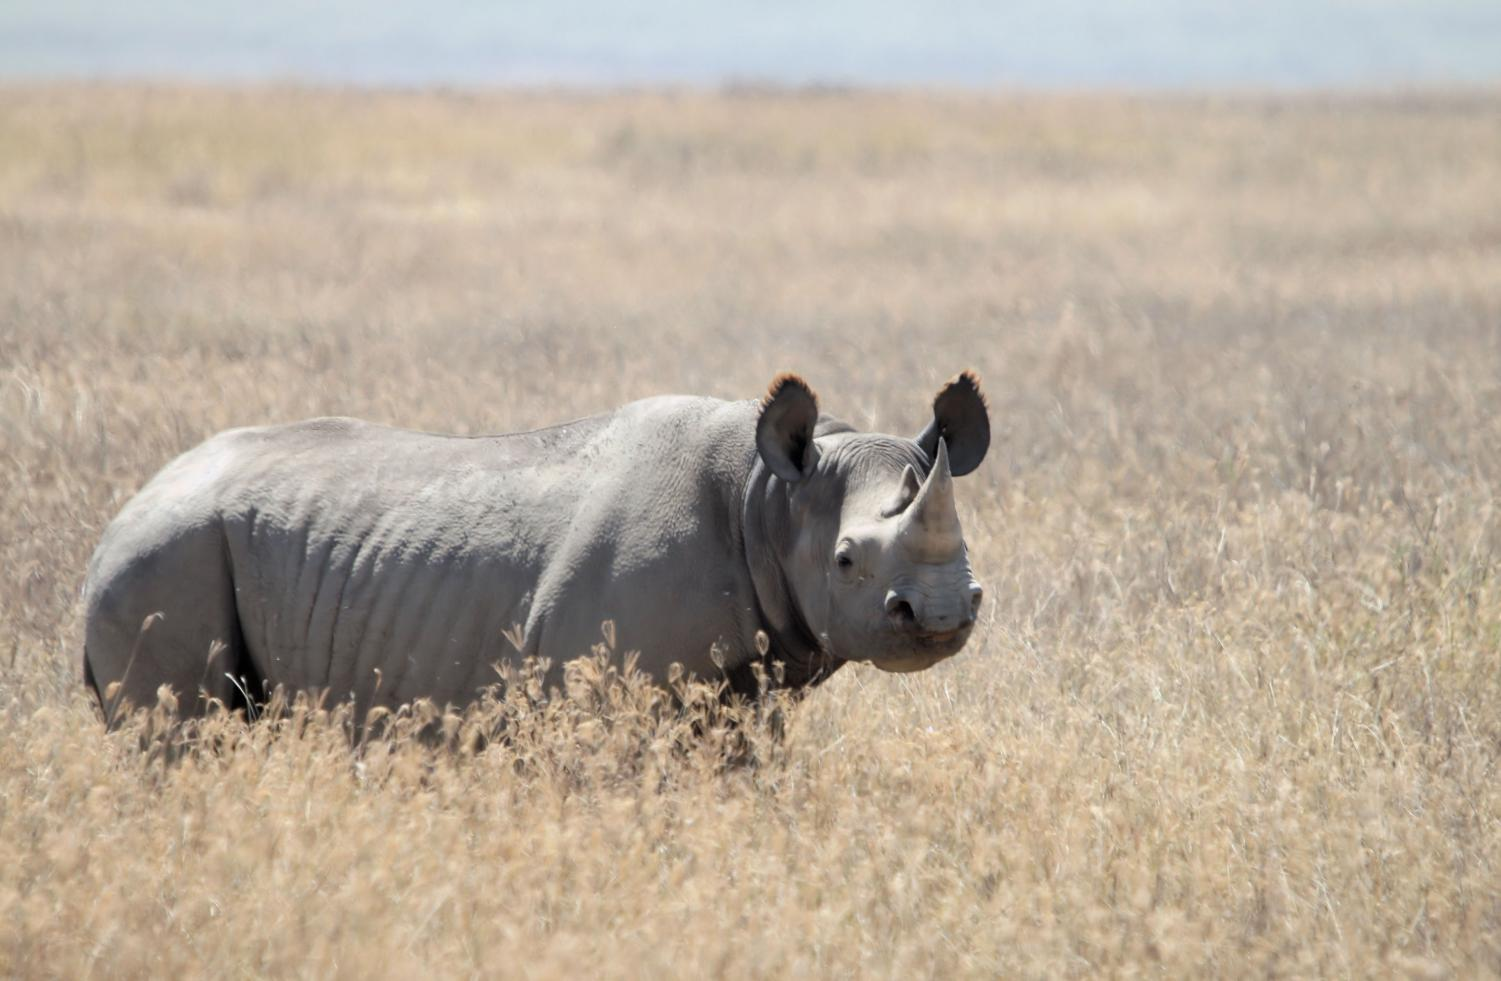 Poaching is a major issue facing the rhinoceros. In Africa, 892 rhinos were poached for their horns in 2018, down from a high of 1,349 killed in 2015.